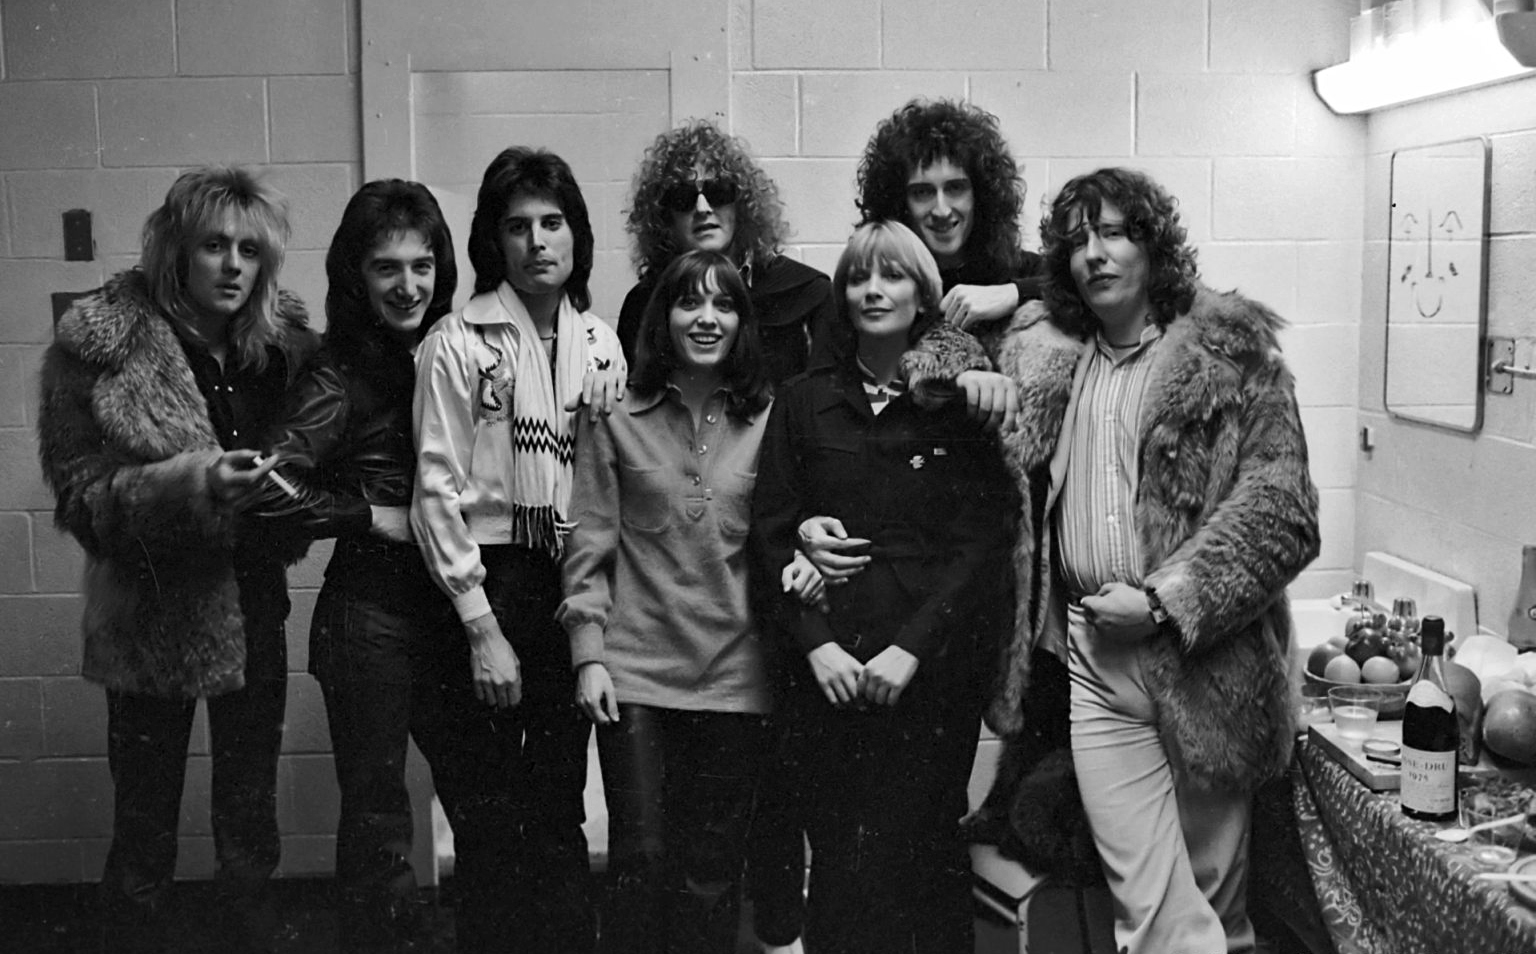 queen-with-ian-hunter-of-mott-the-hoople-and-music-producer-roy-thomas-baker-at-the-montreal-forum-26th-january-1977.jpg